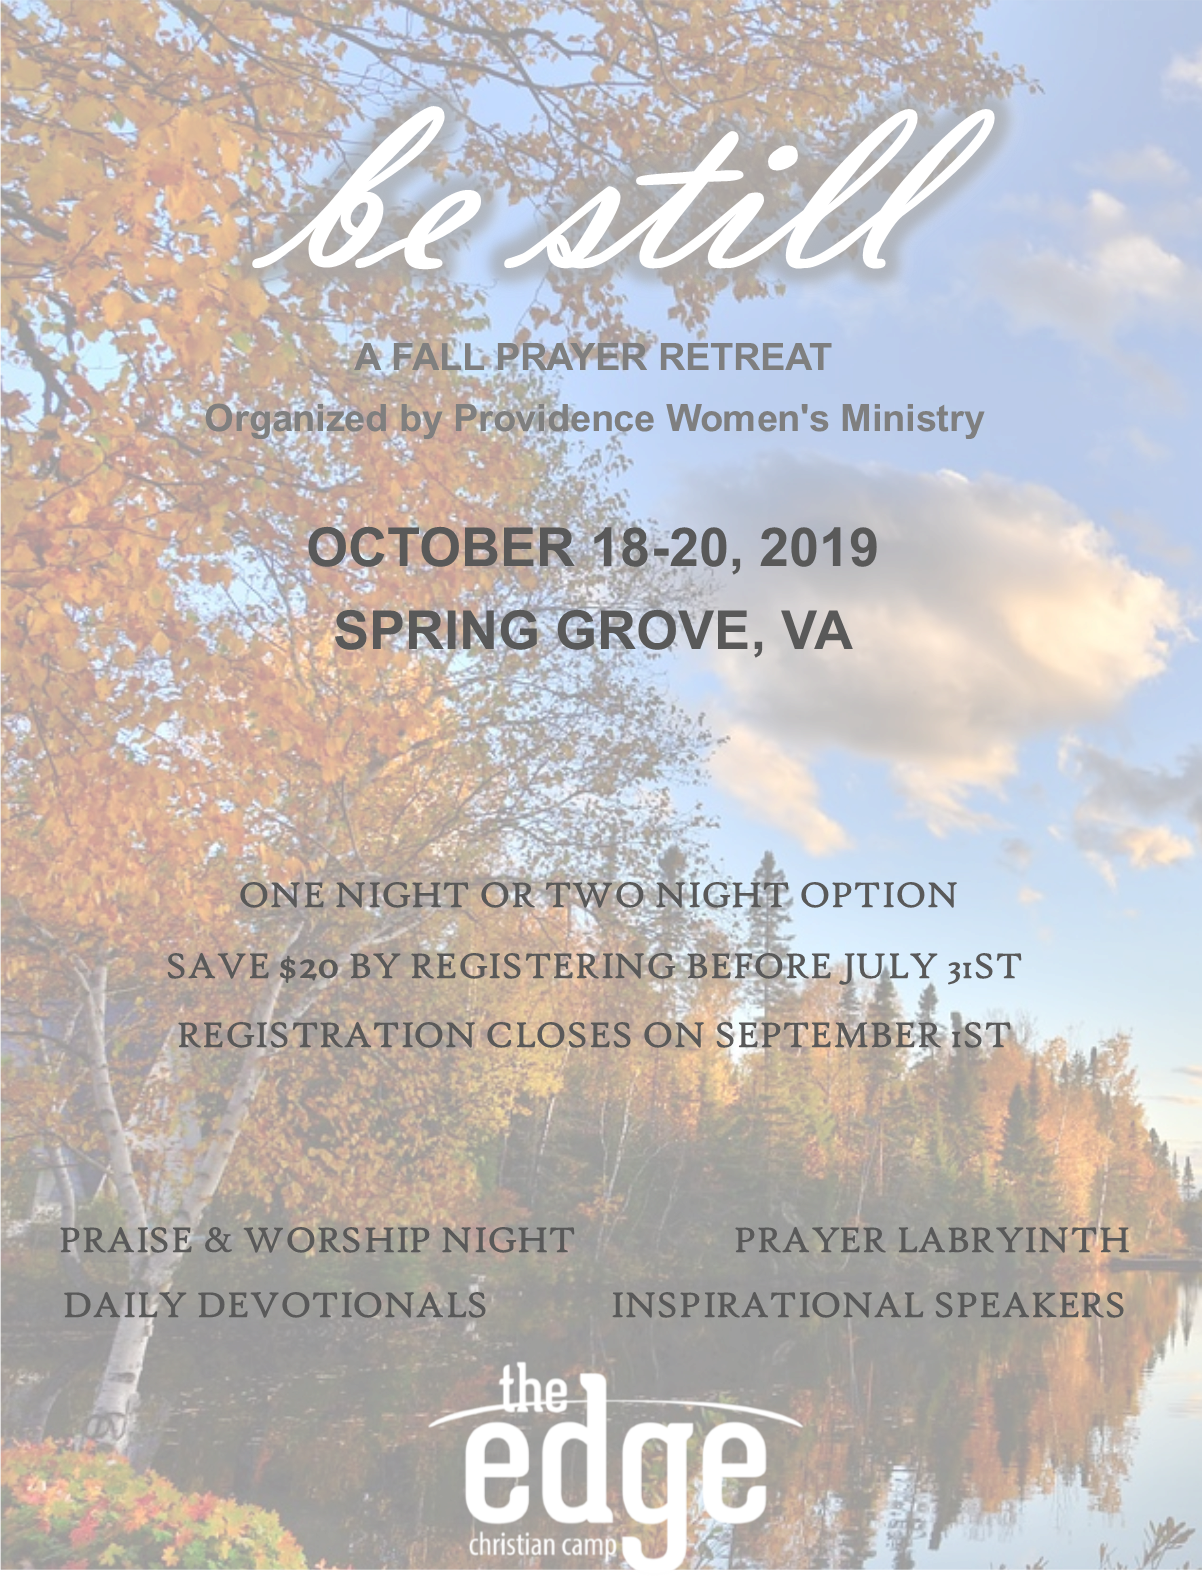 Fall retreat website